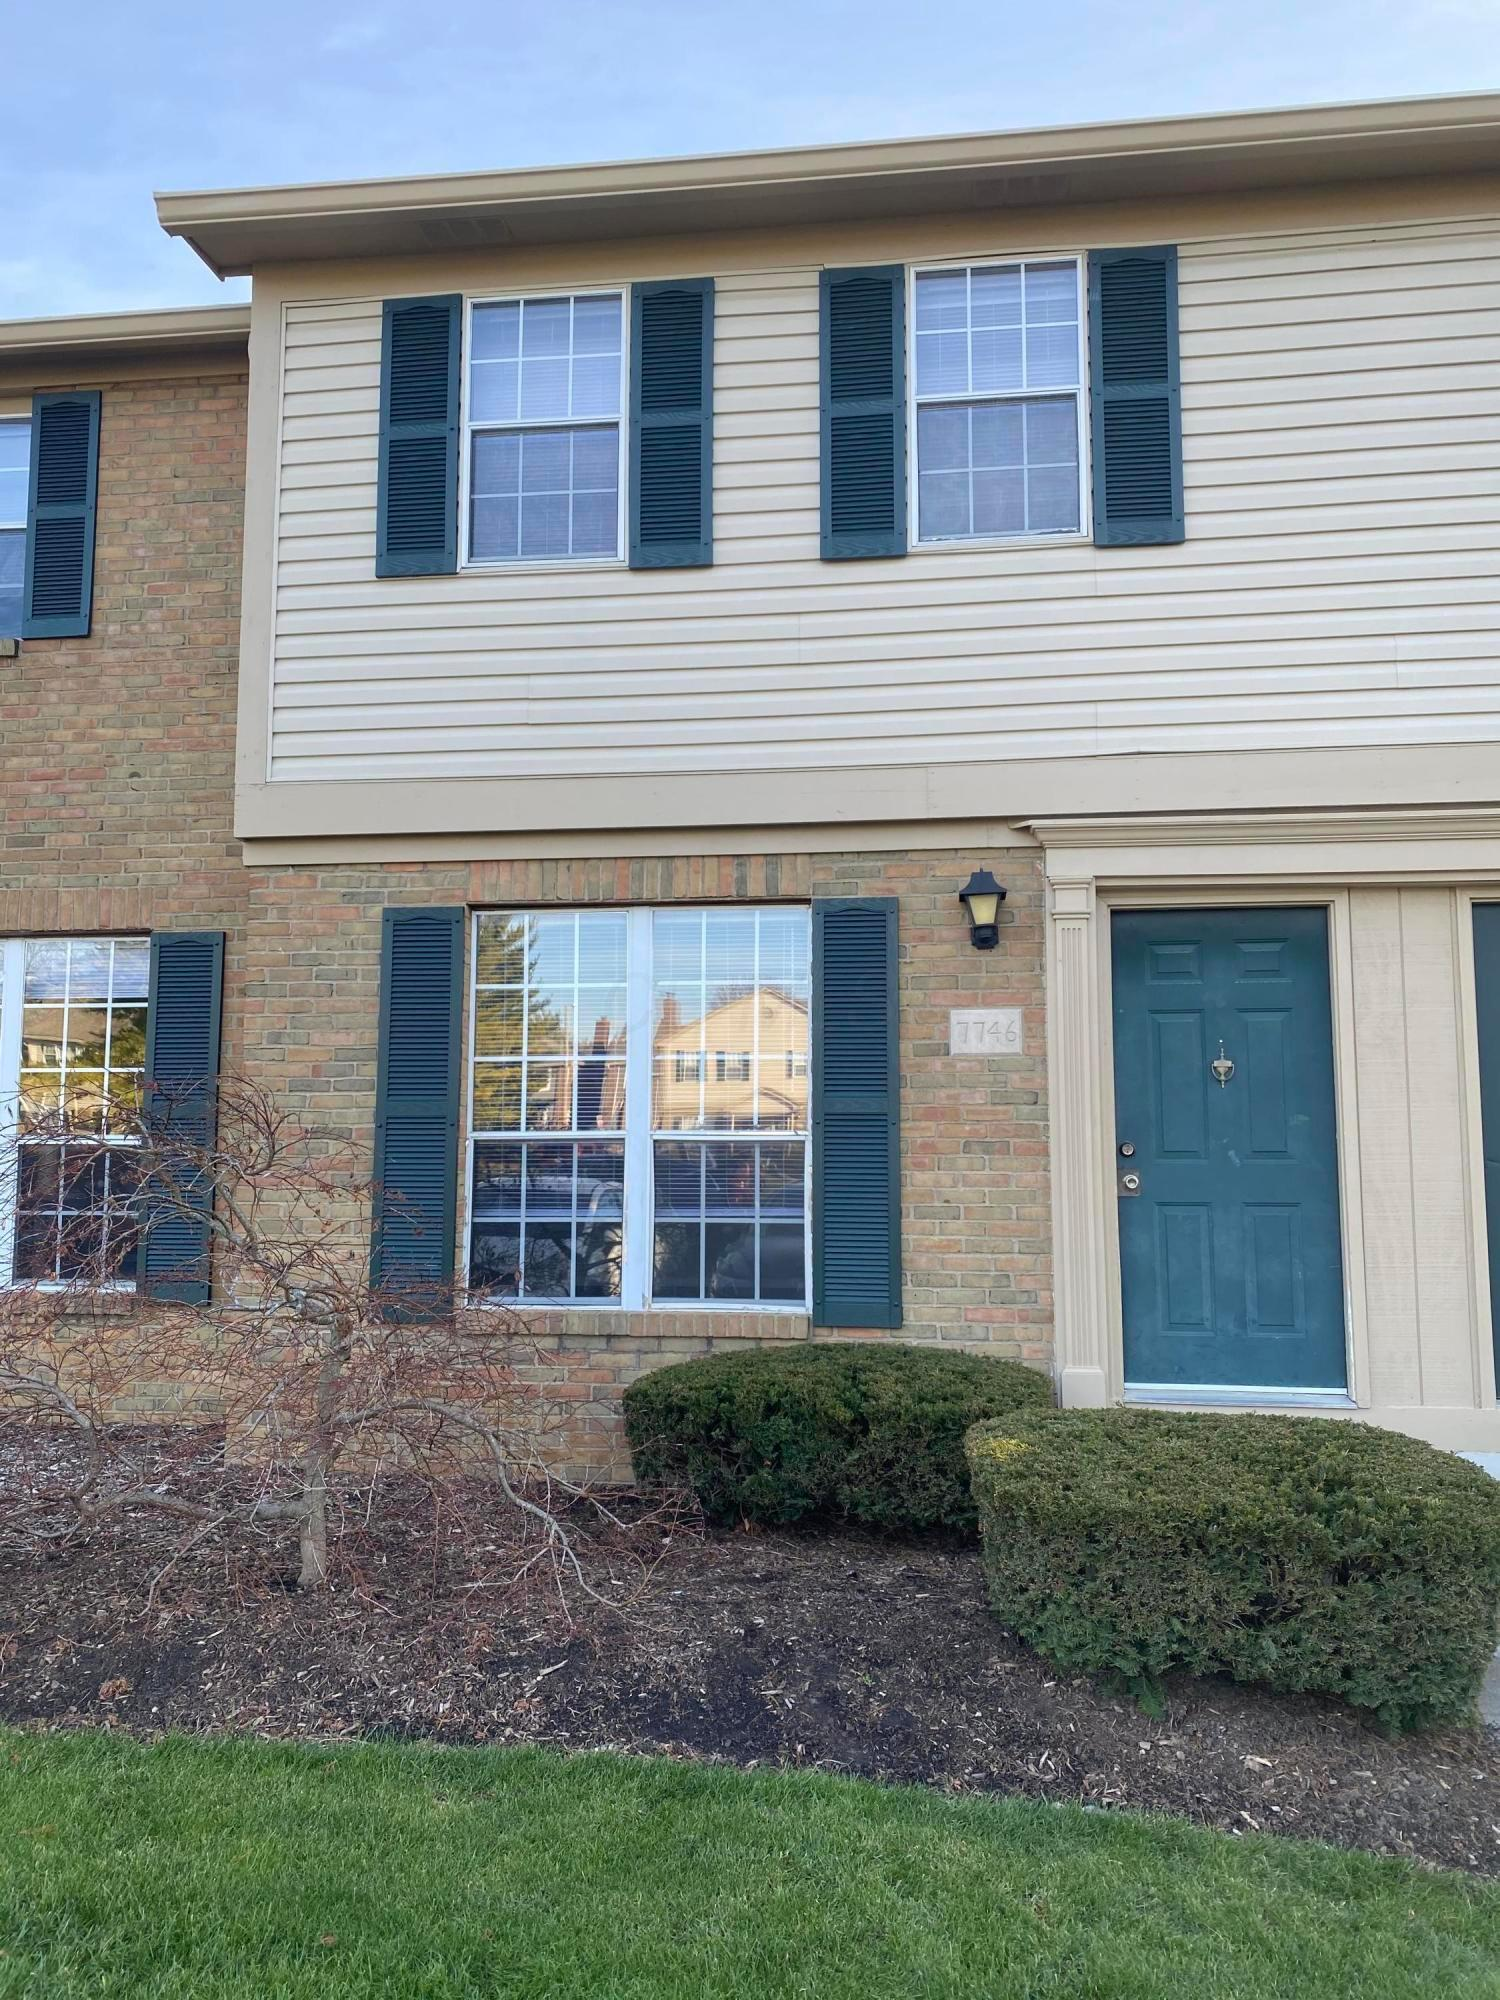 7746 Amberfalls Court, Dublin, Ohio 43016, 2 Bedrooms Bedrooms, ,2 BathroomsBathrooms,Residential,For Sale,Amberfalls,220042893